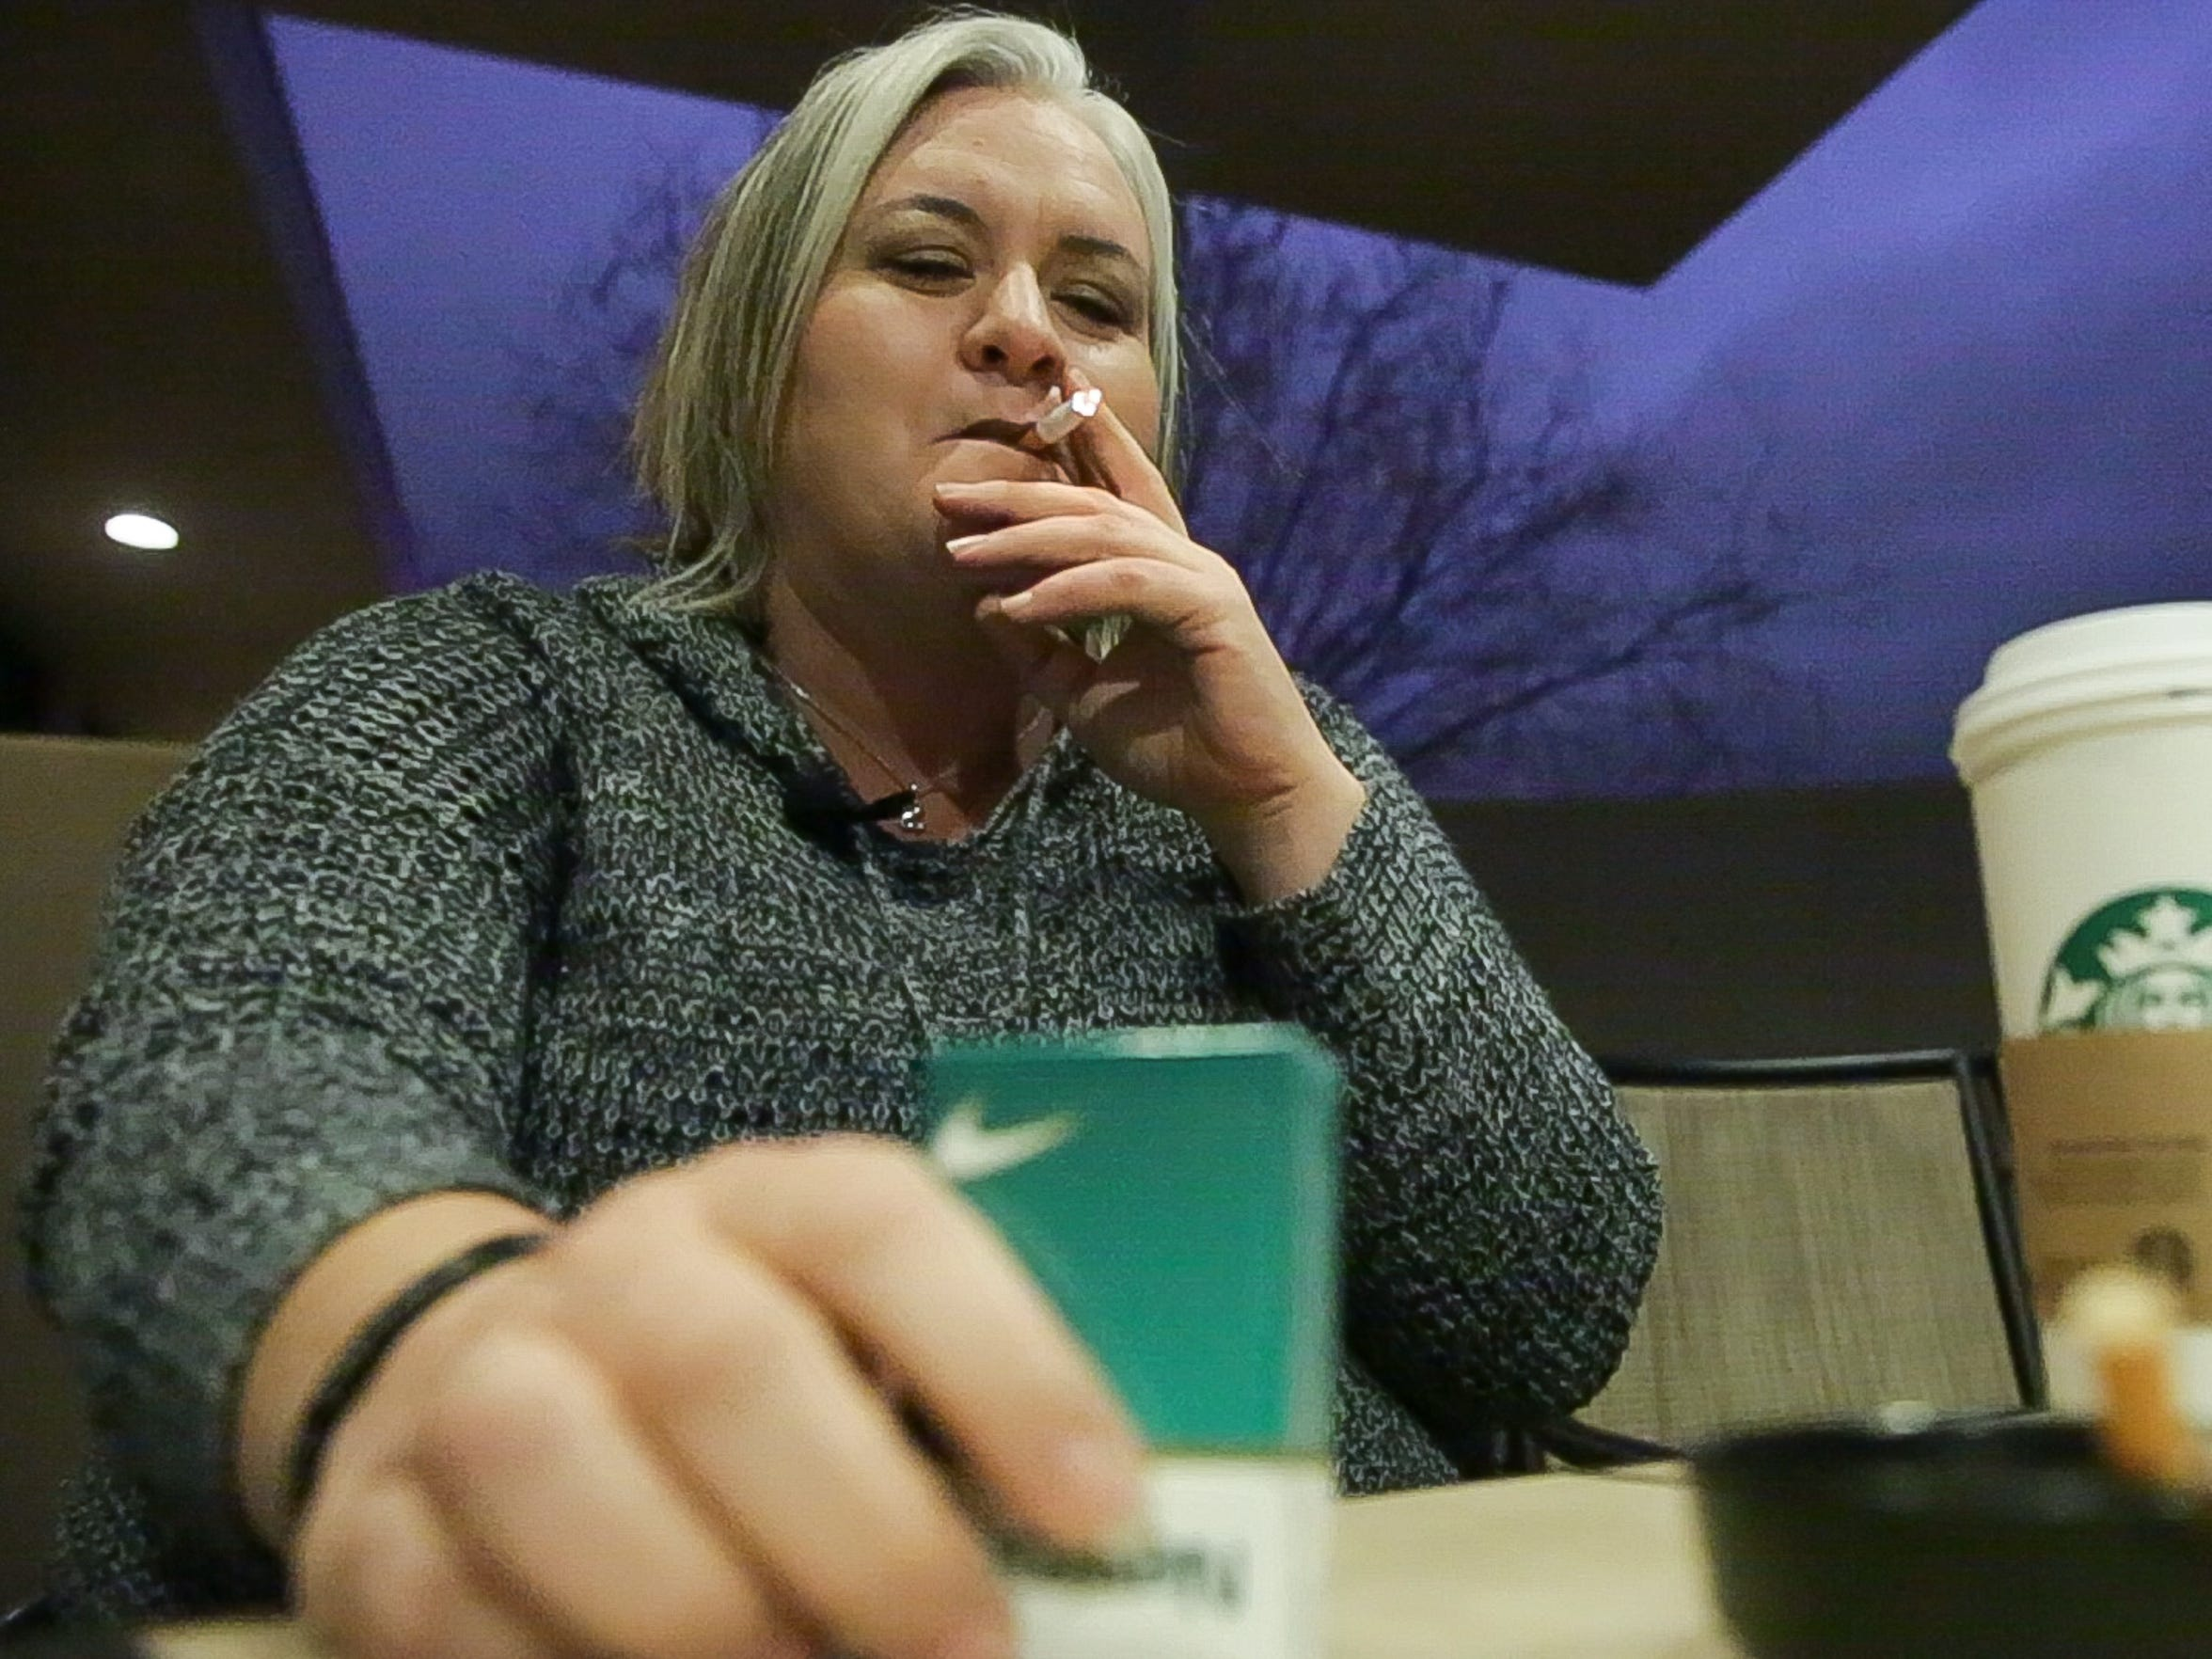 Sarah Stevens smokes her Newport cigarettes on Saturday Jan. 14, 2017. Stevens says she is trying to quit.